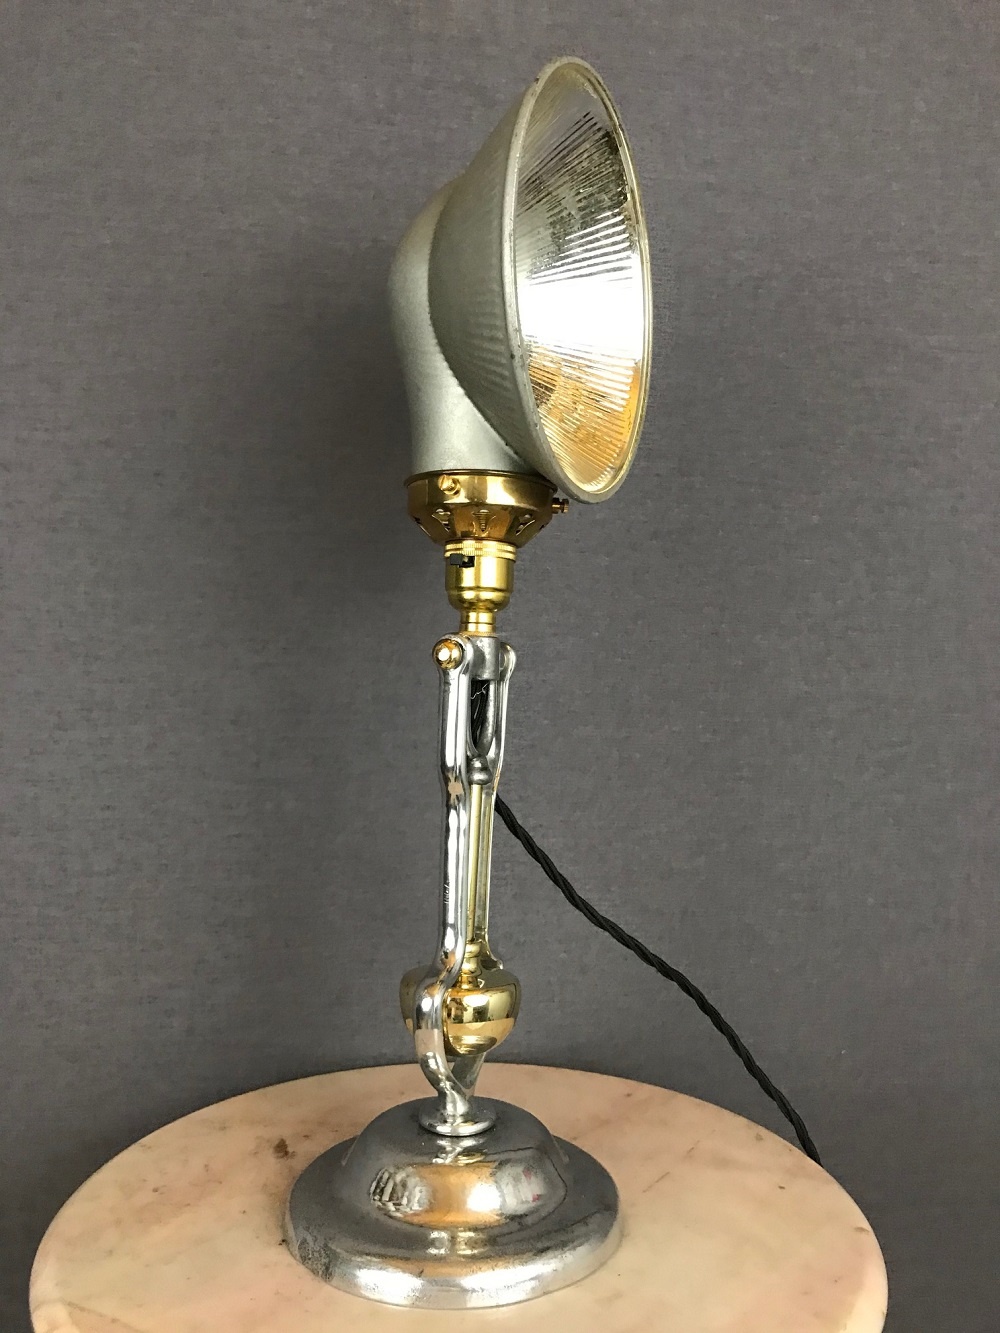 Antique Gimbal Nautical Table Lamp With Gecoray Shade 91006